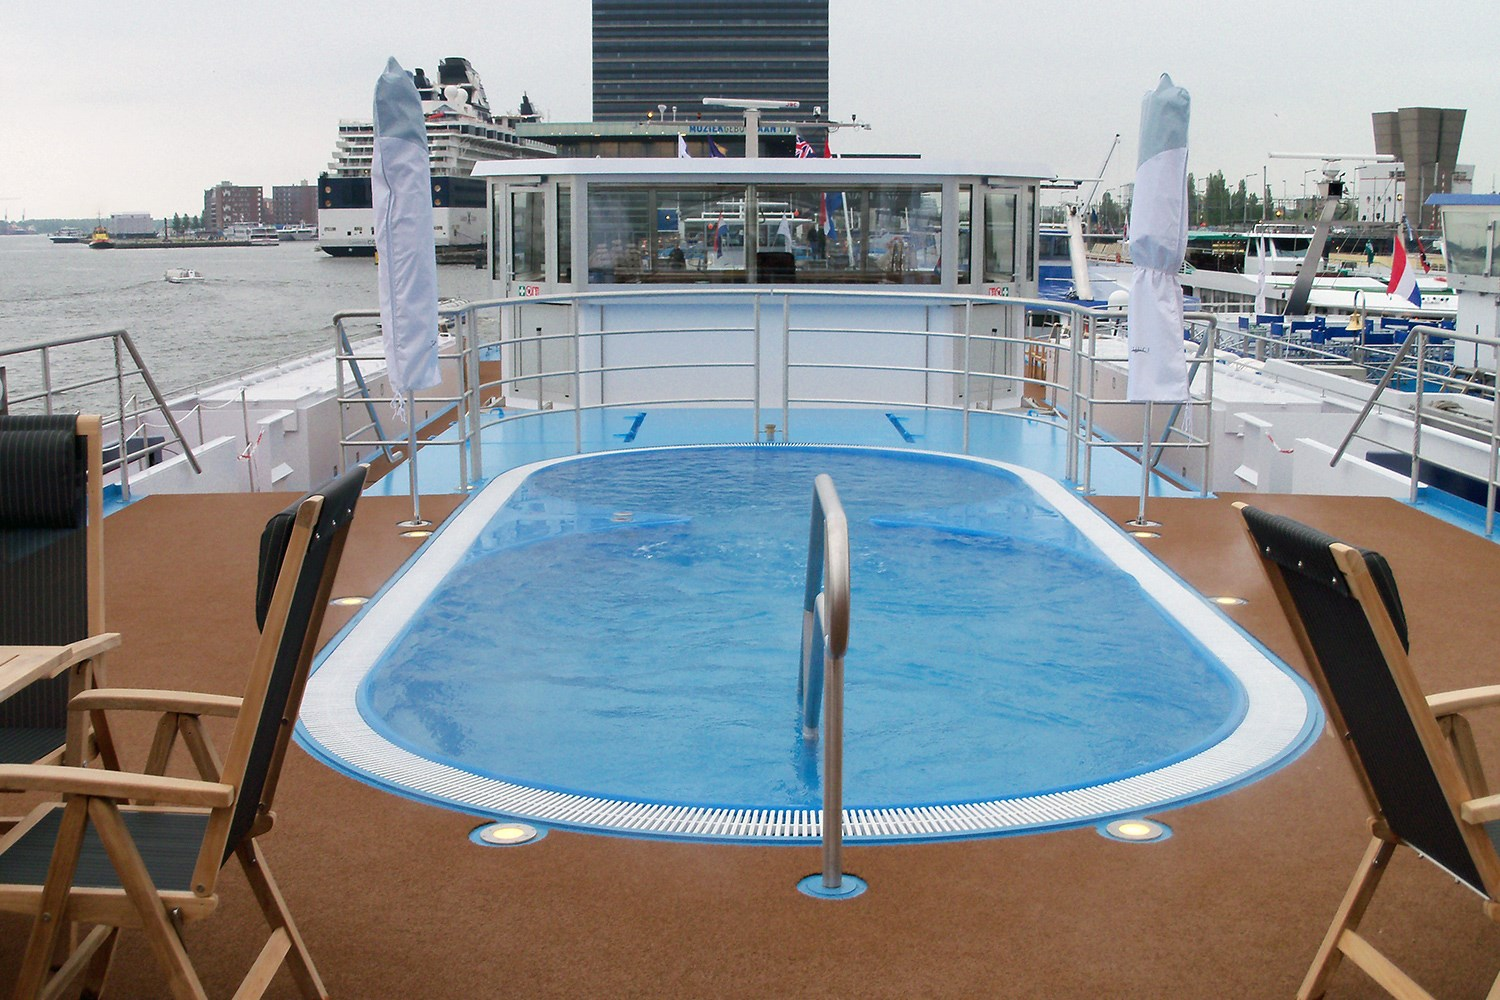 Amaverde river cruise ship amawaterways for River cruise ships with swimming pool